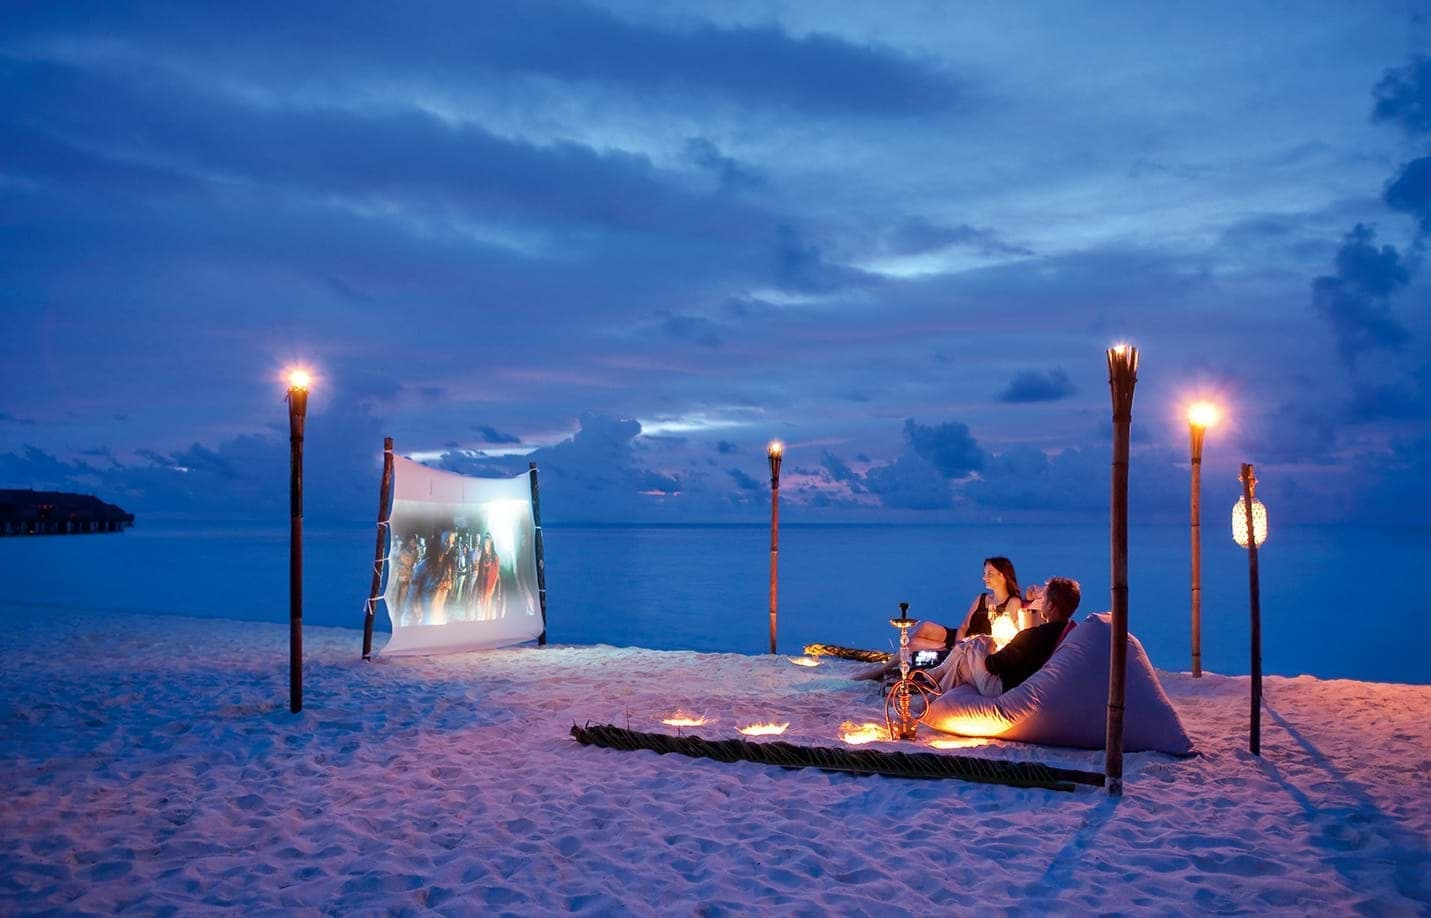 Enjoy a romantic movie under the stars